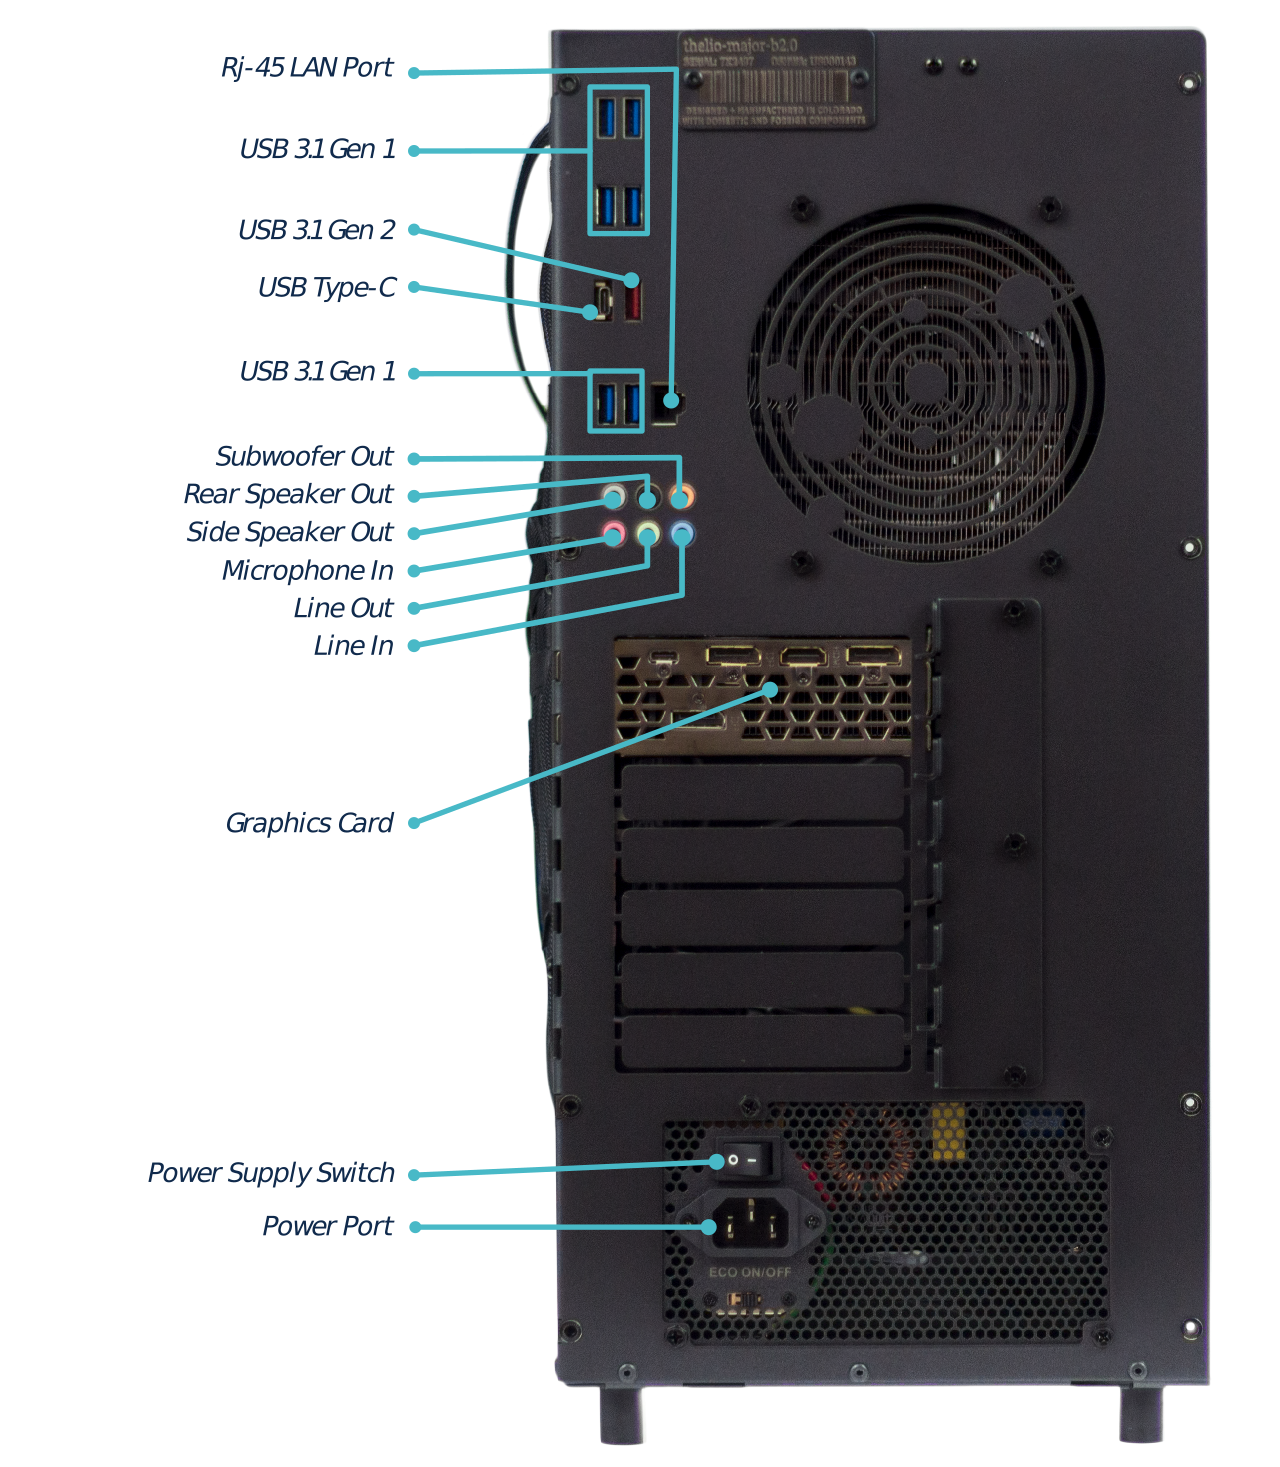 External Thelio Ports Overview